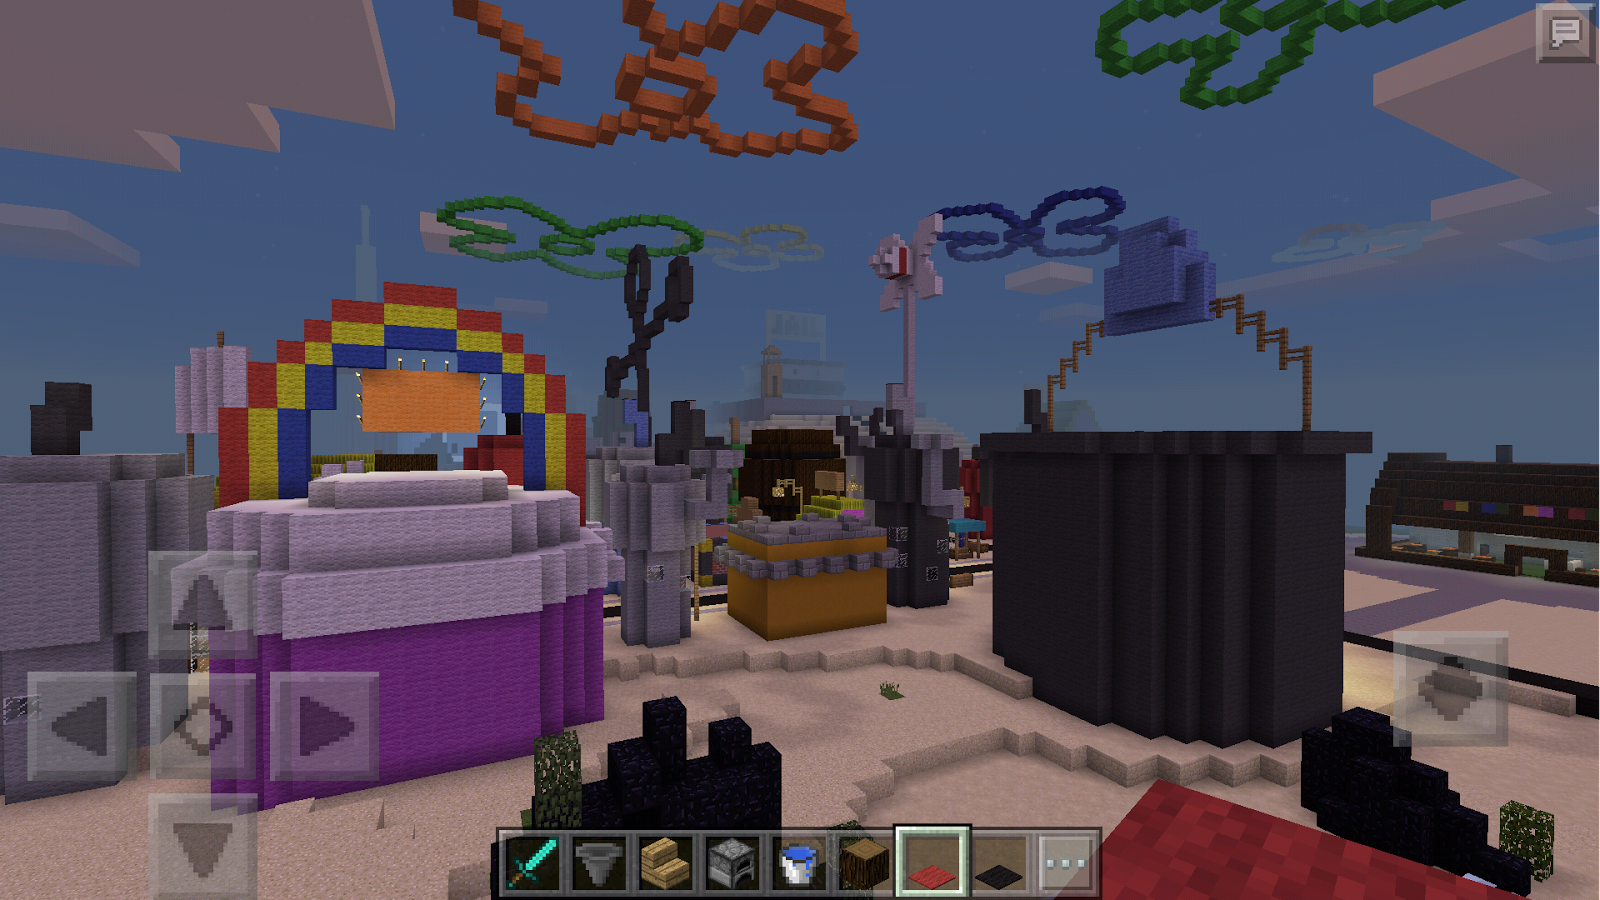 Bikini bob maps minecraft pe android apps on google play bikini bob maps minecraft pe screenshot sciox Image collections